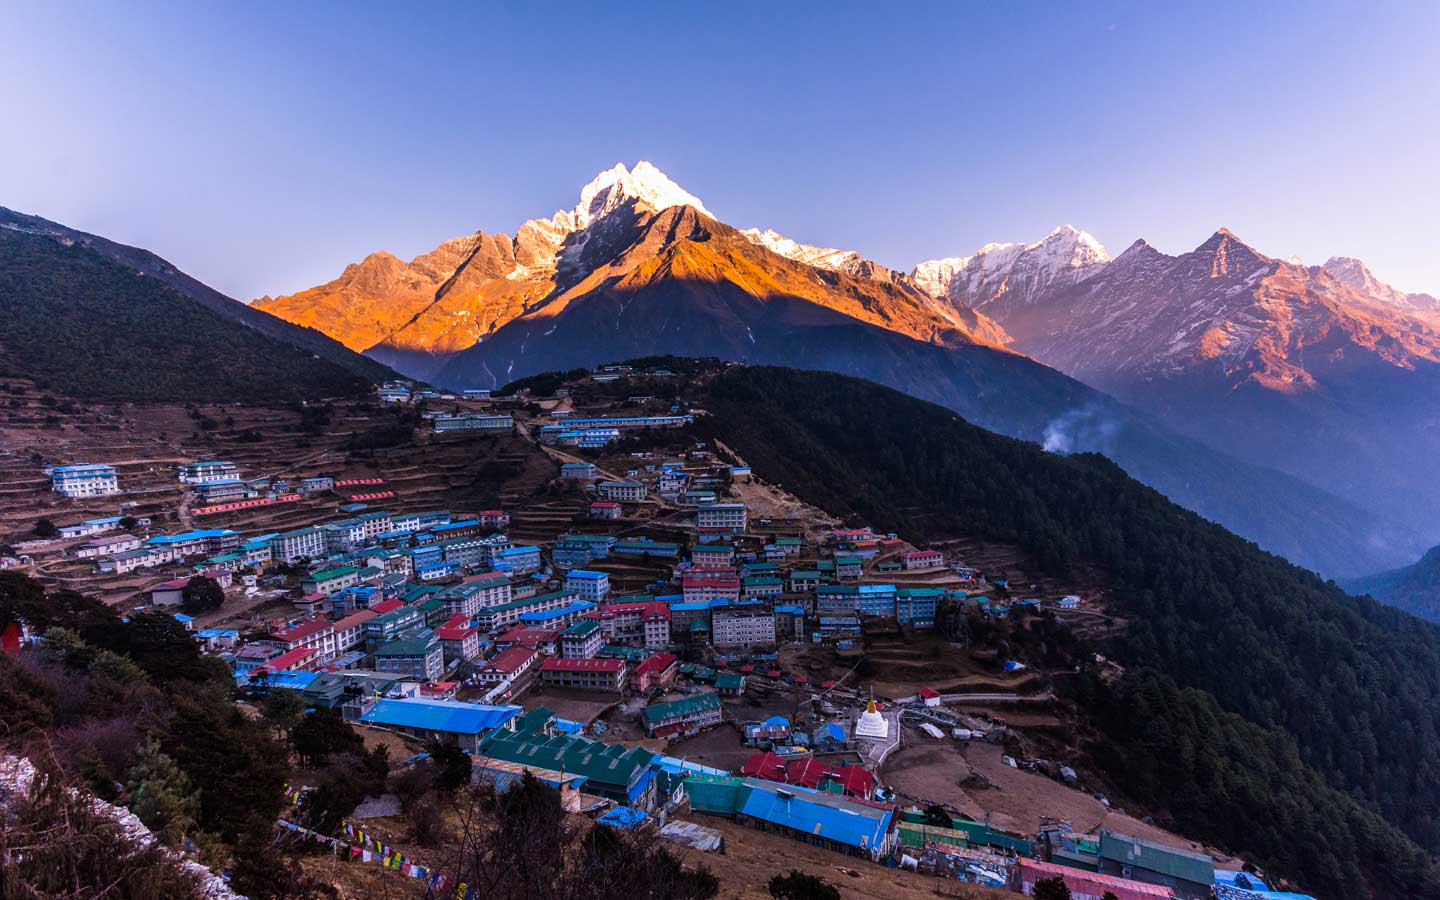 Why Namche Bazar is the gateway to Mt. Everest – things to do in Namche